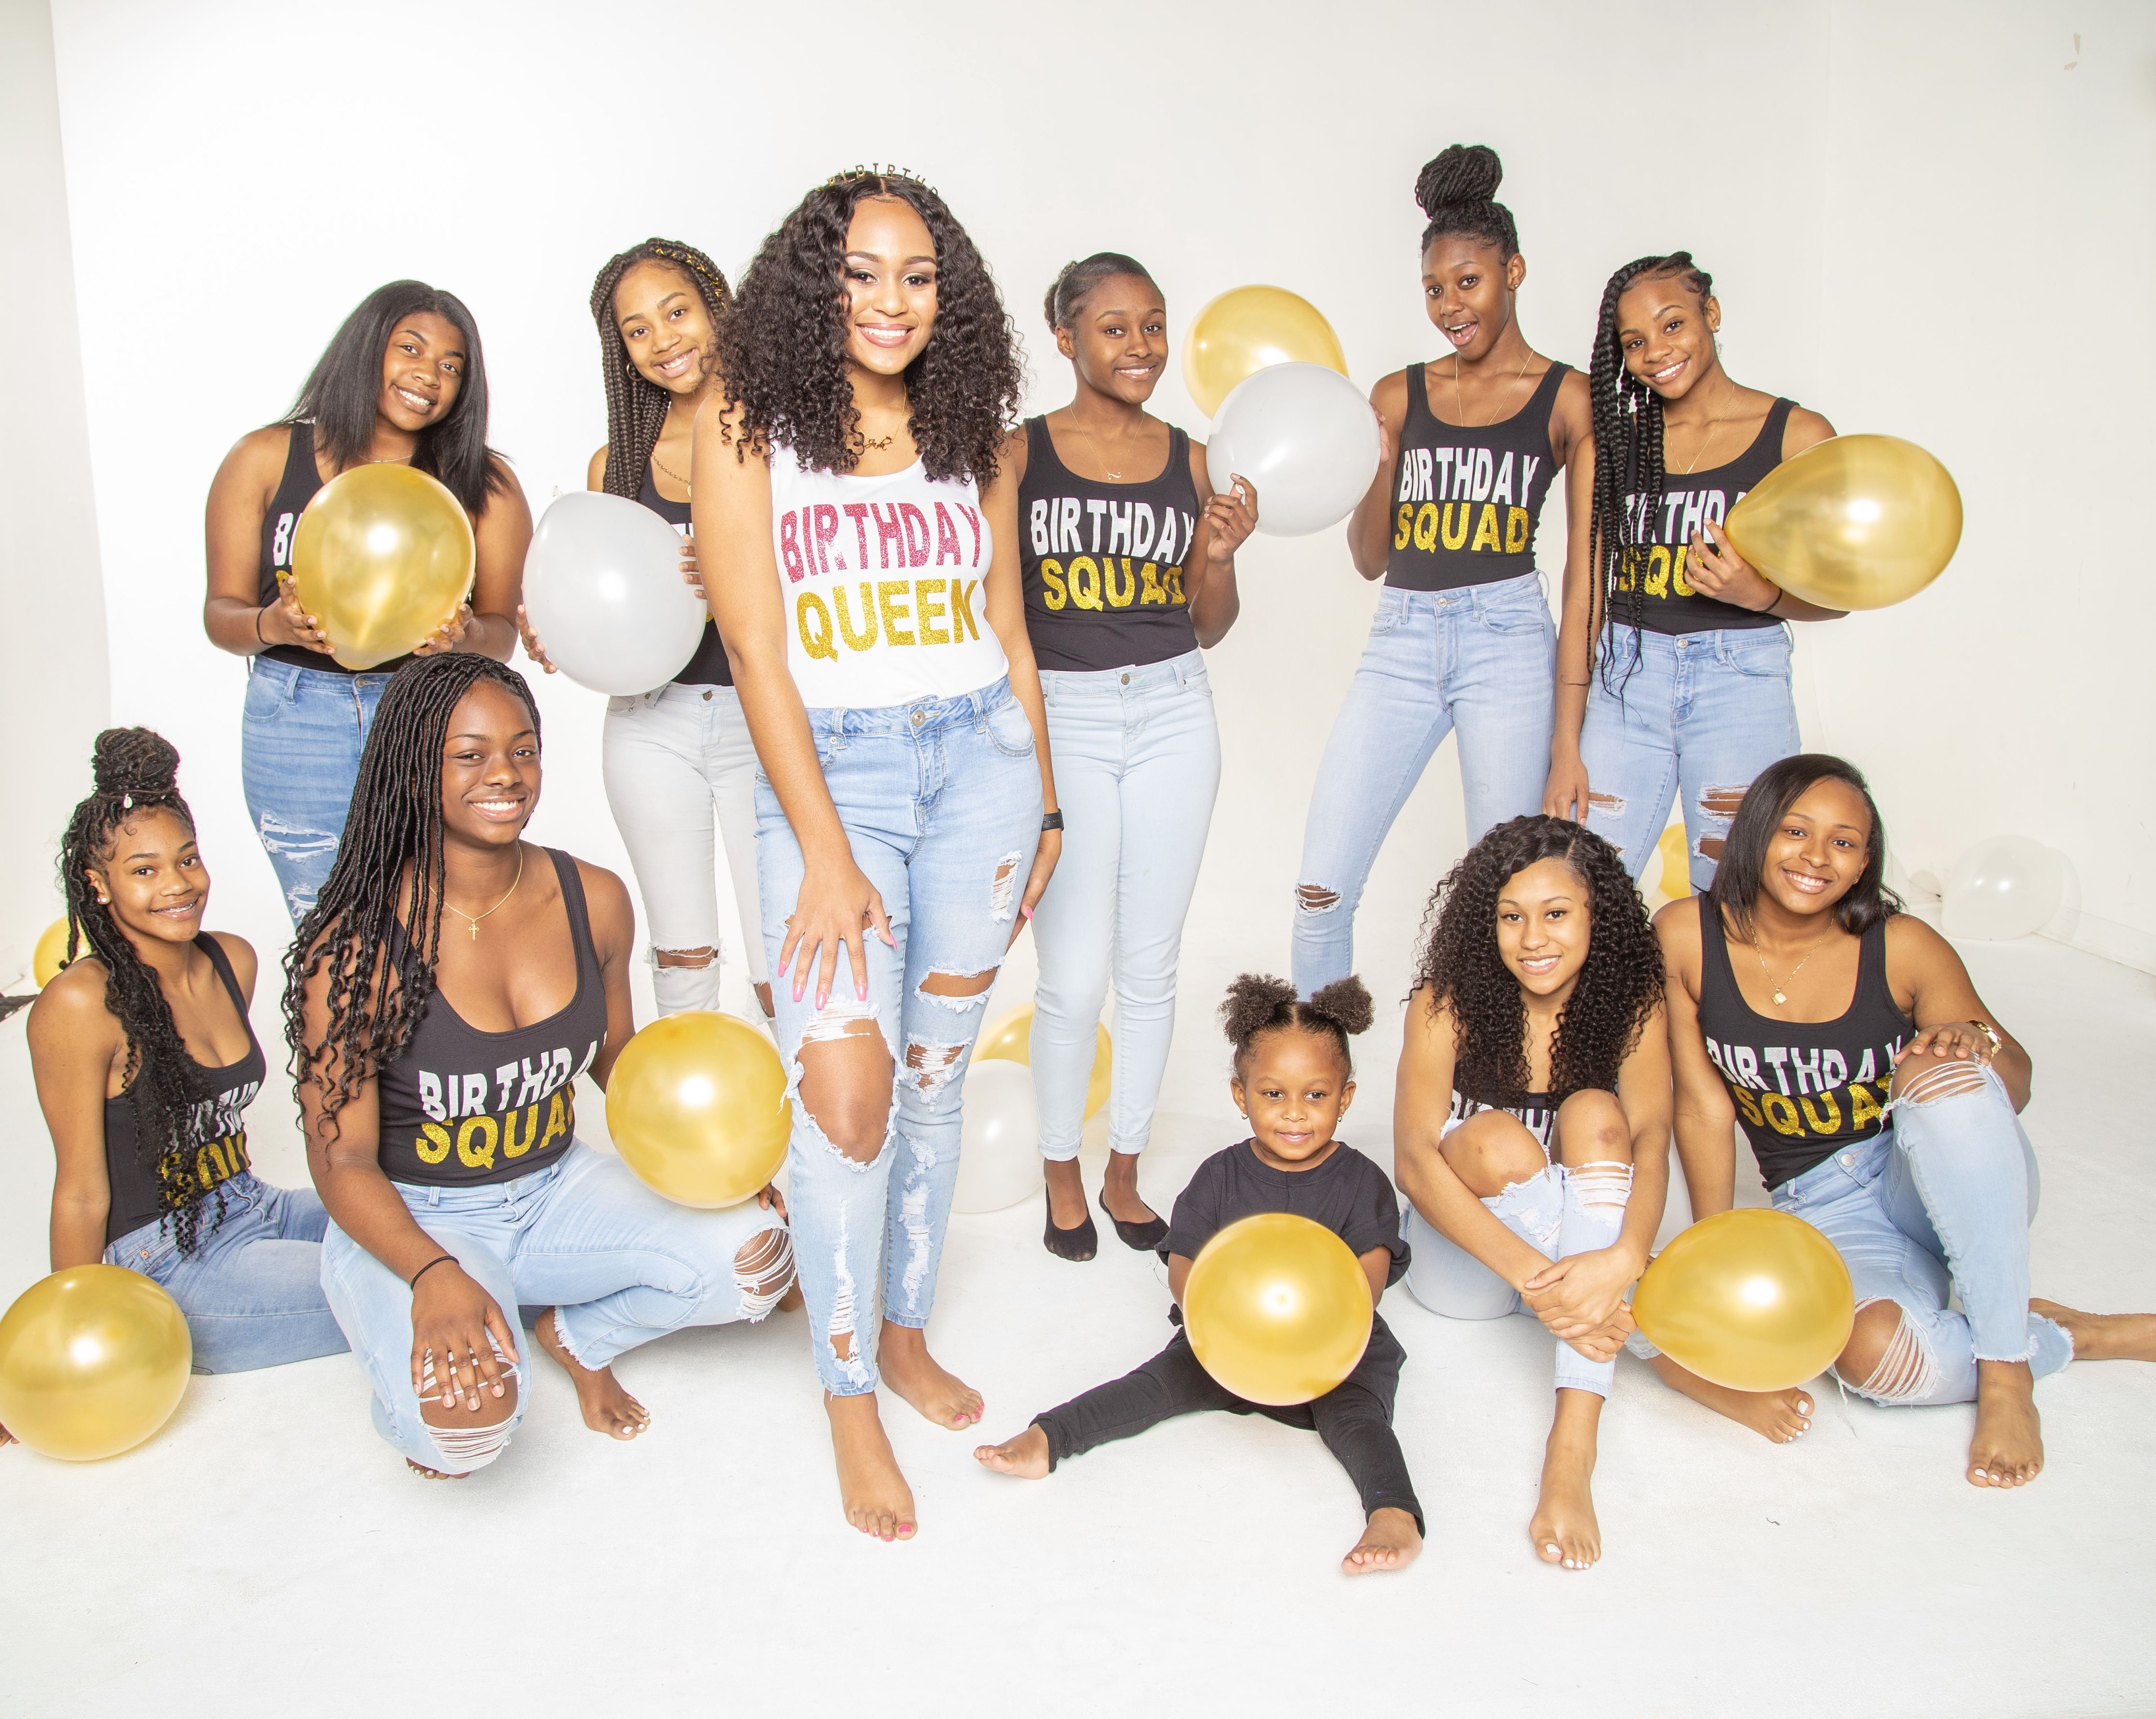 Sweet 16 Photoshoot Birthday Photoshoot Sweet 16 Shirts Sweet 16 Photos With a massive room with floors and walls completely covered with trampolines, guests are free to bounce to their heart's content. pinterest